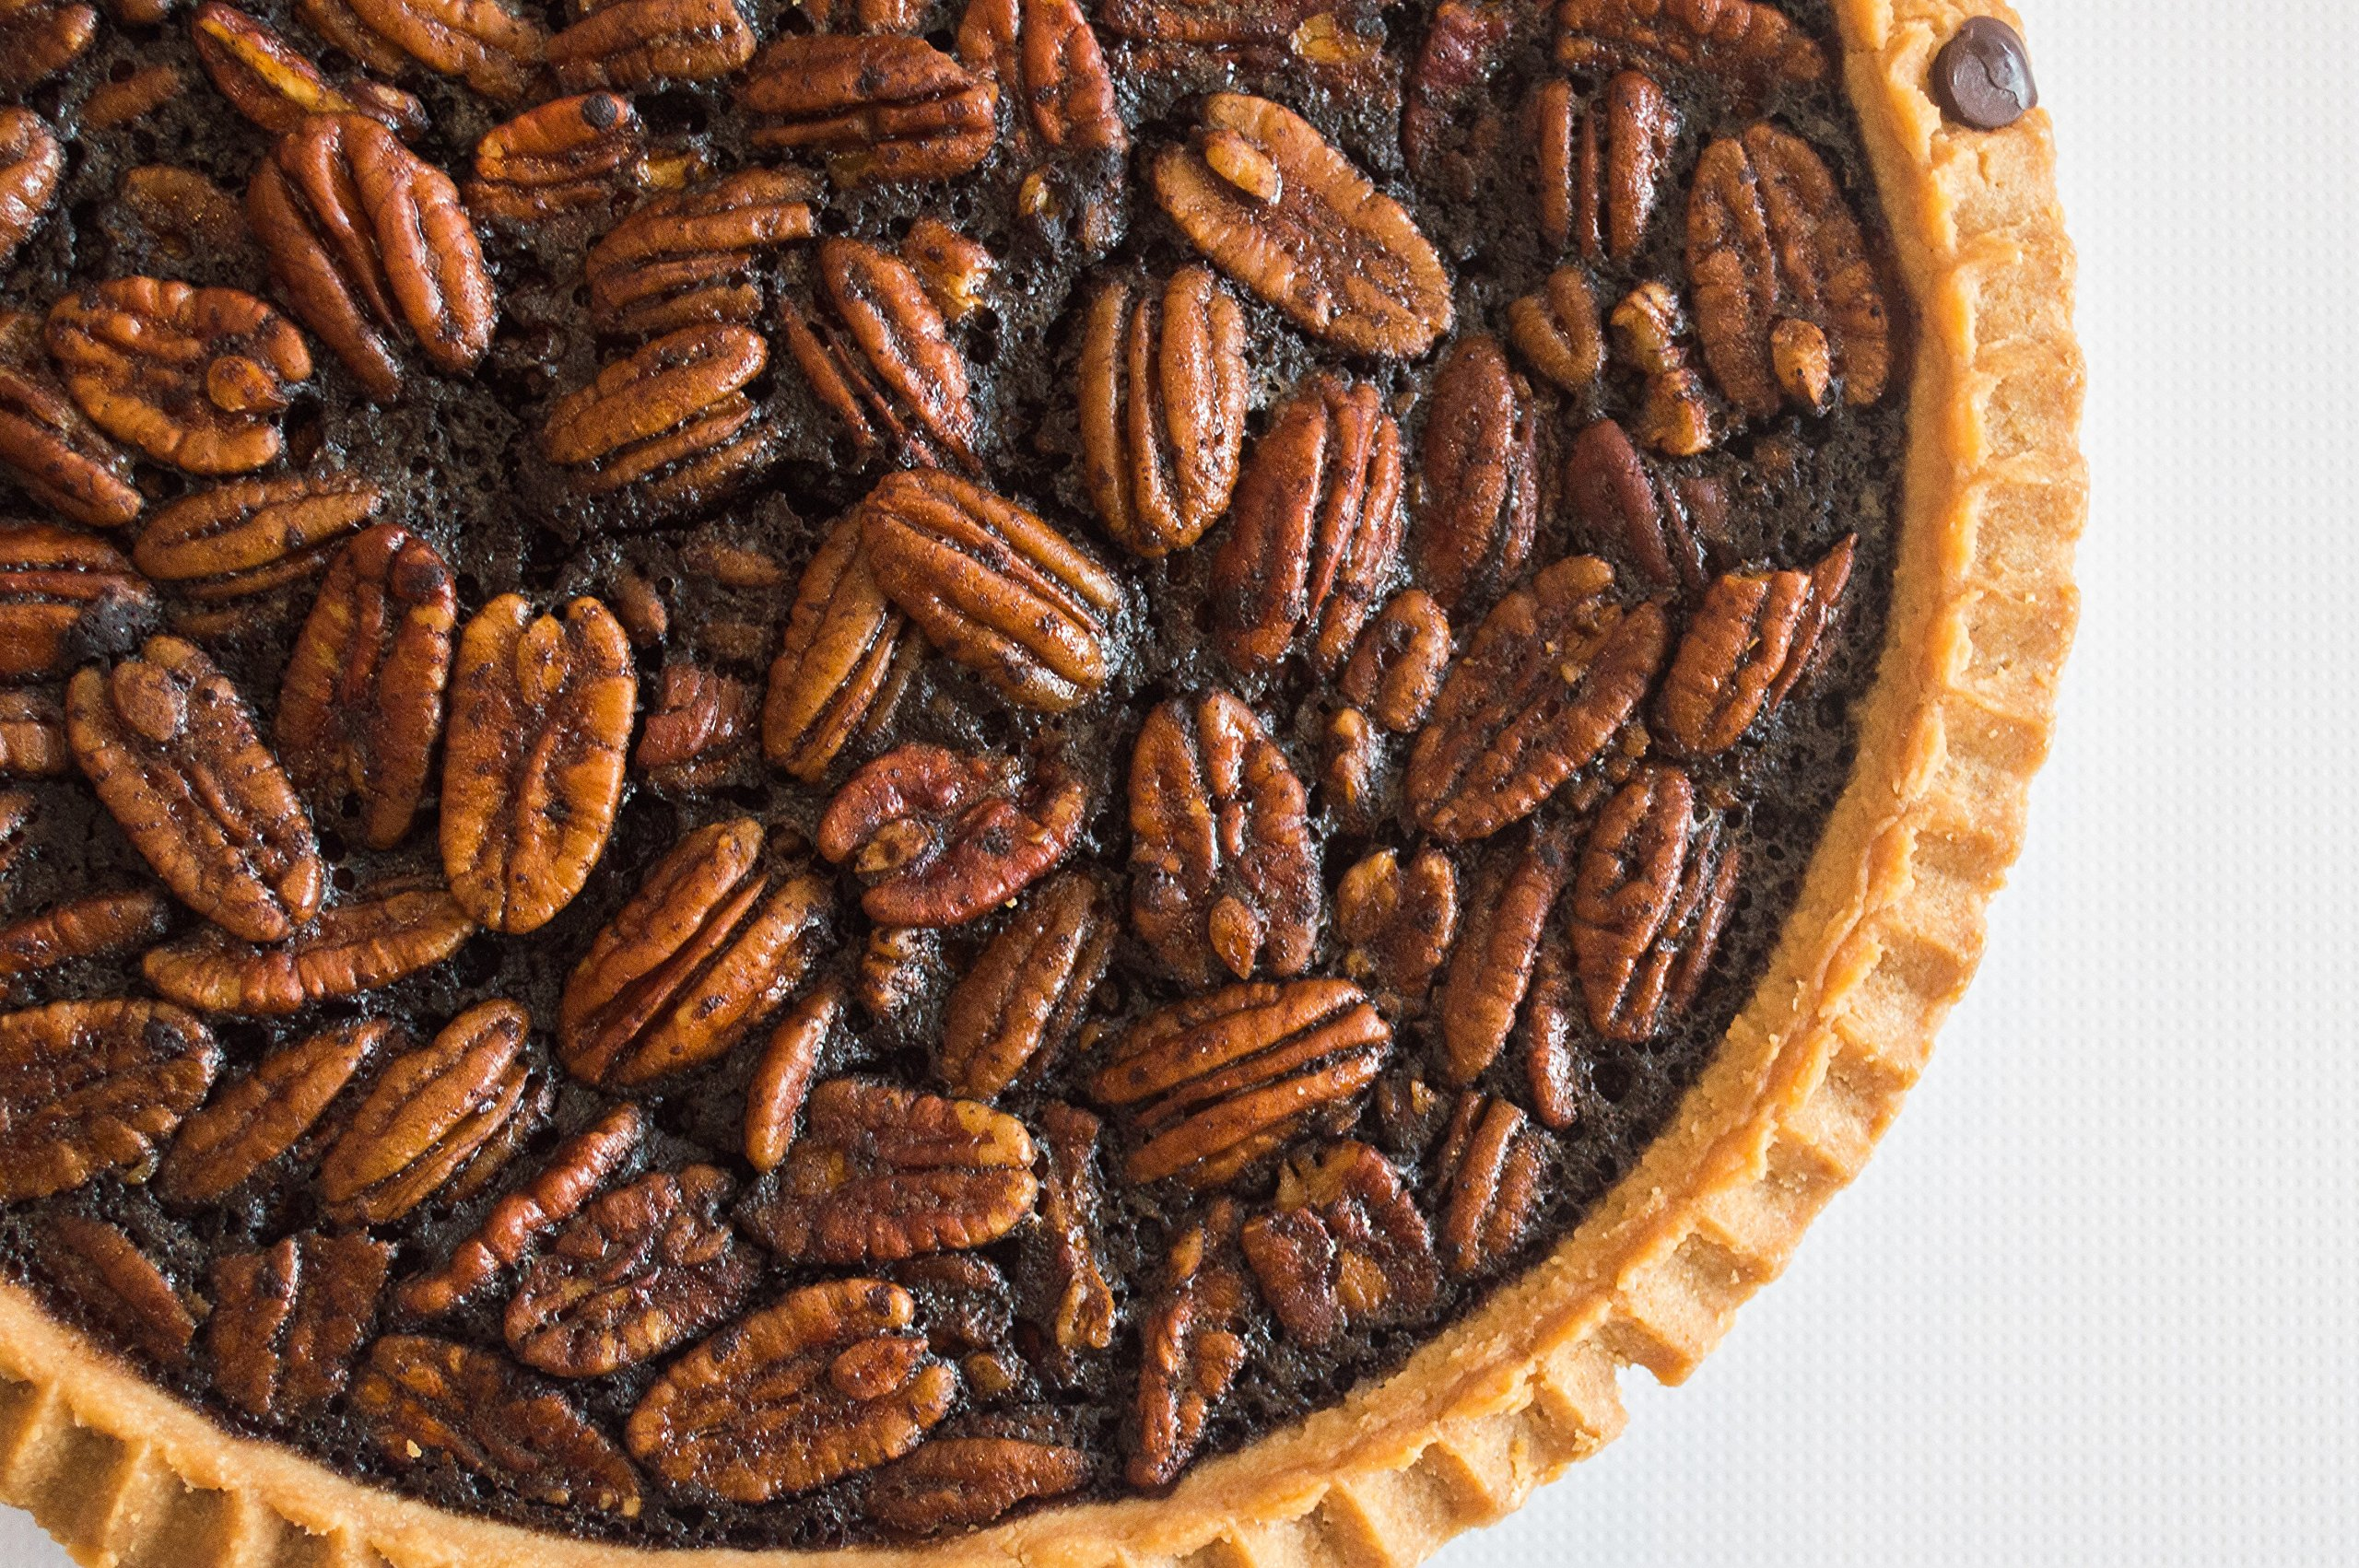 Three Brothers Bakery Award Winning Chocolate Fudge Southern Pecan Pie